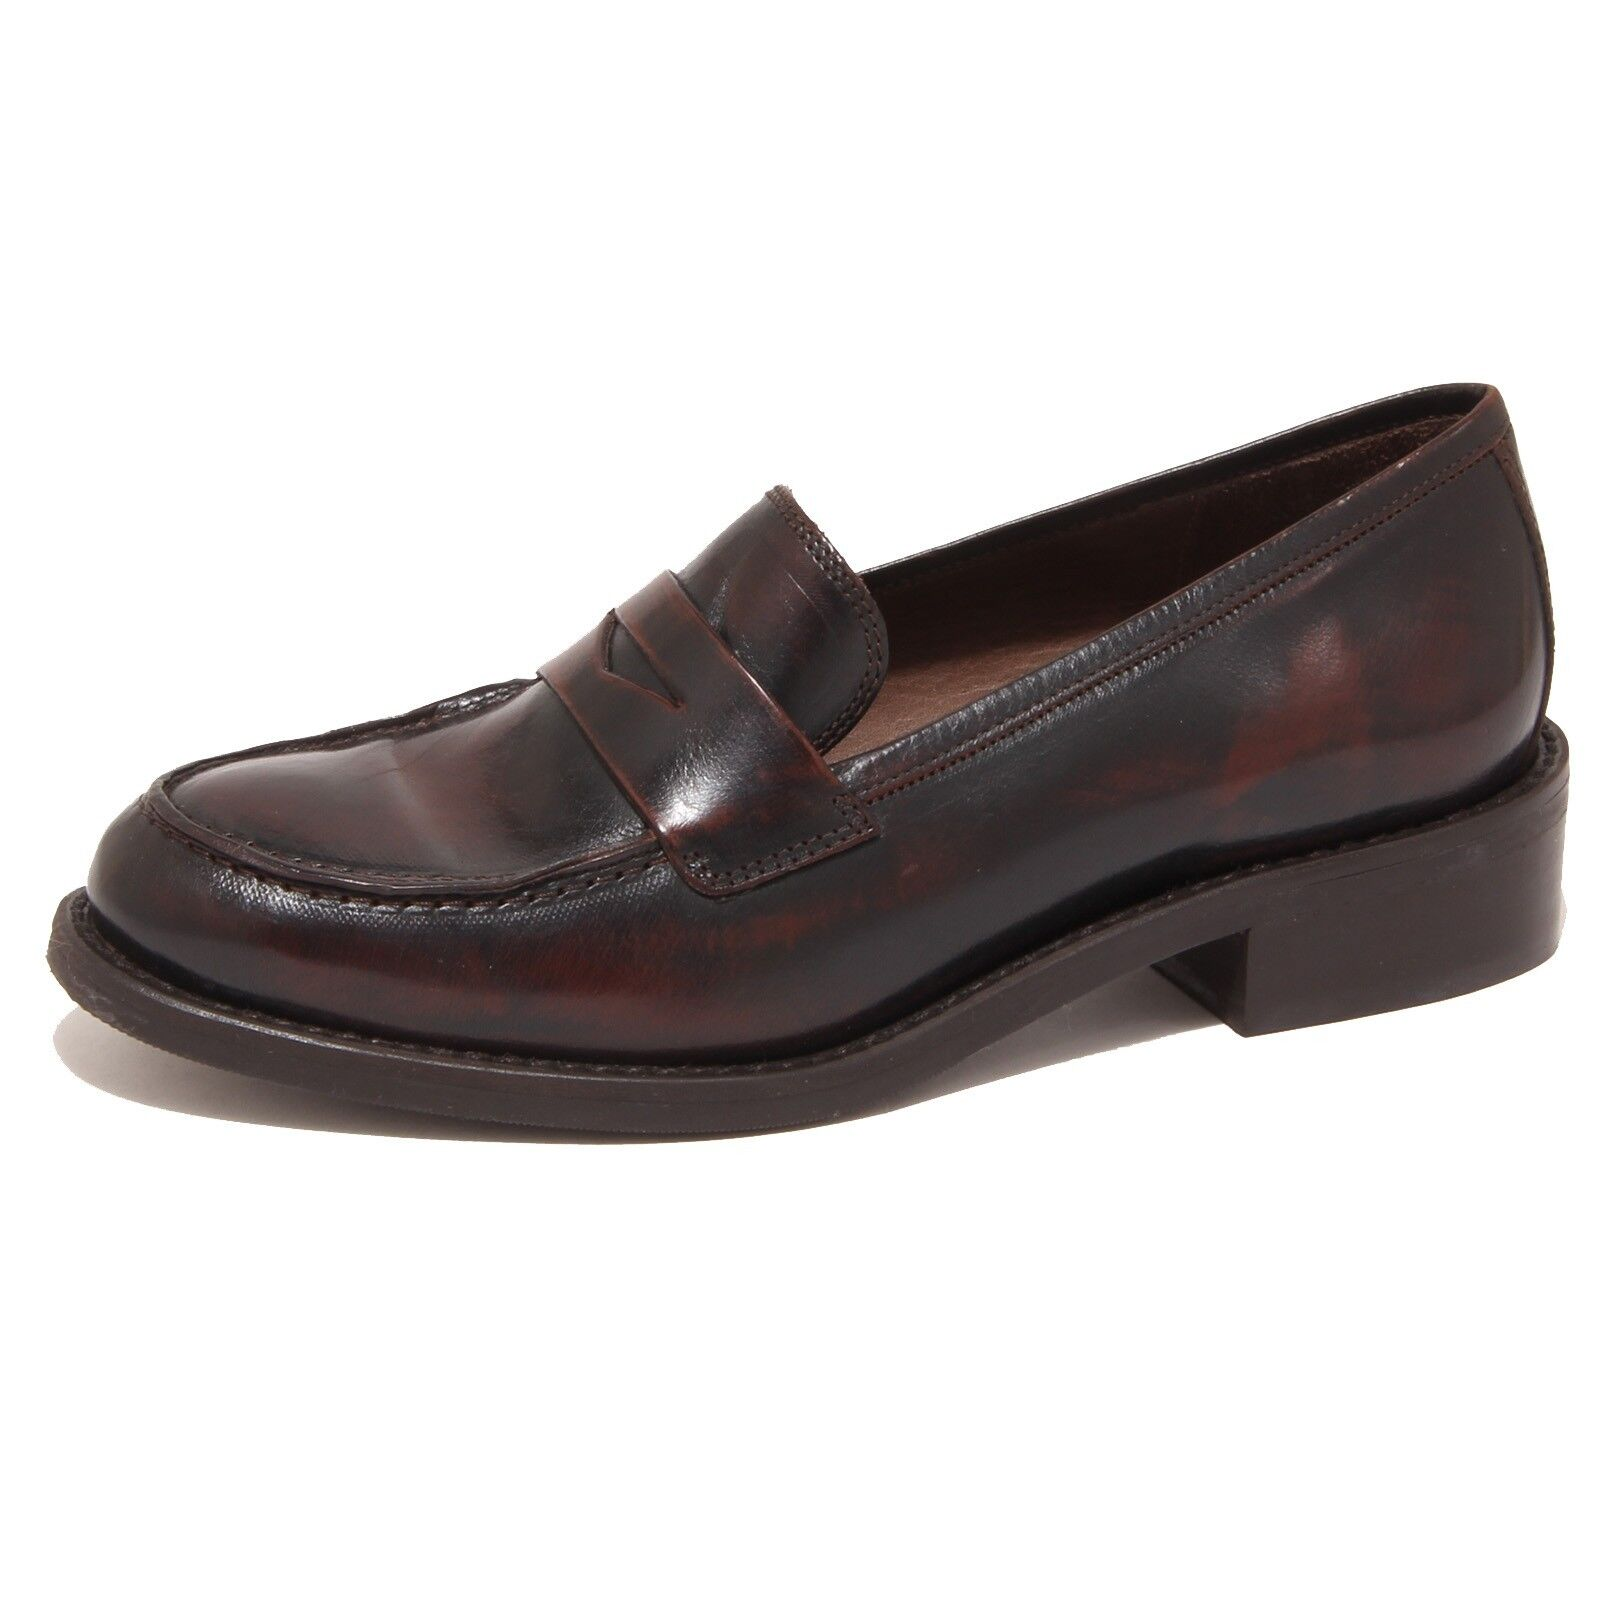 8466P mocassino SAX ASTOR ABS marrone scarpa donna loafer woman